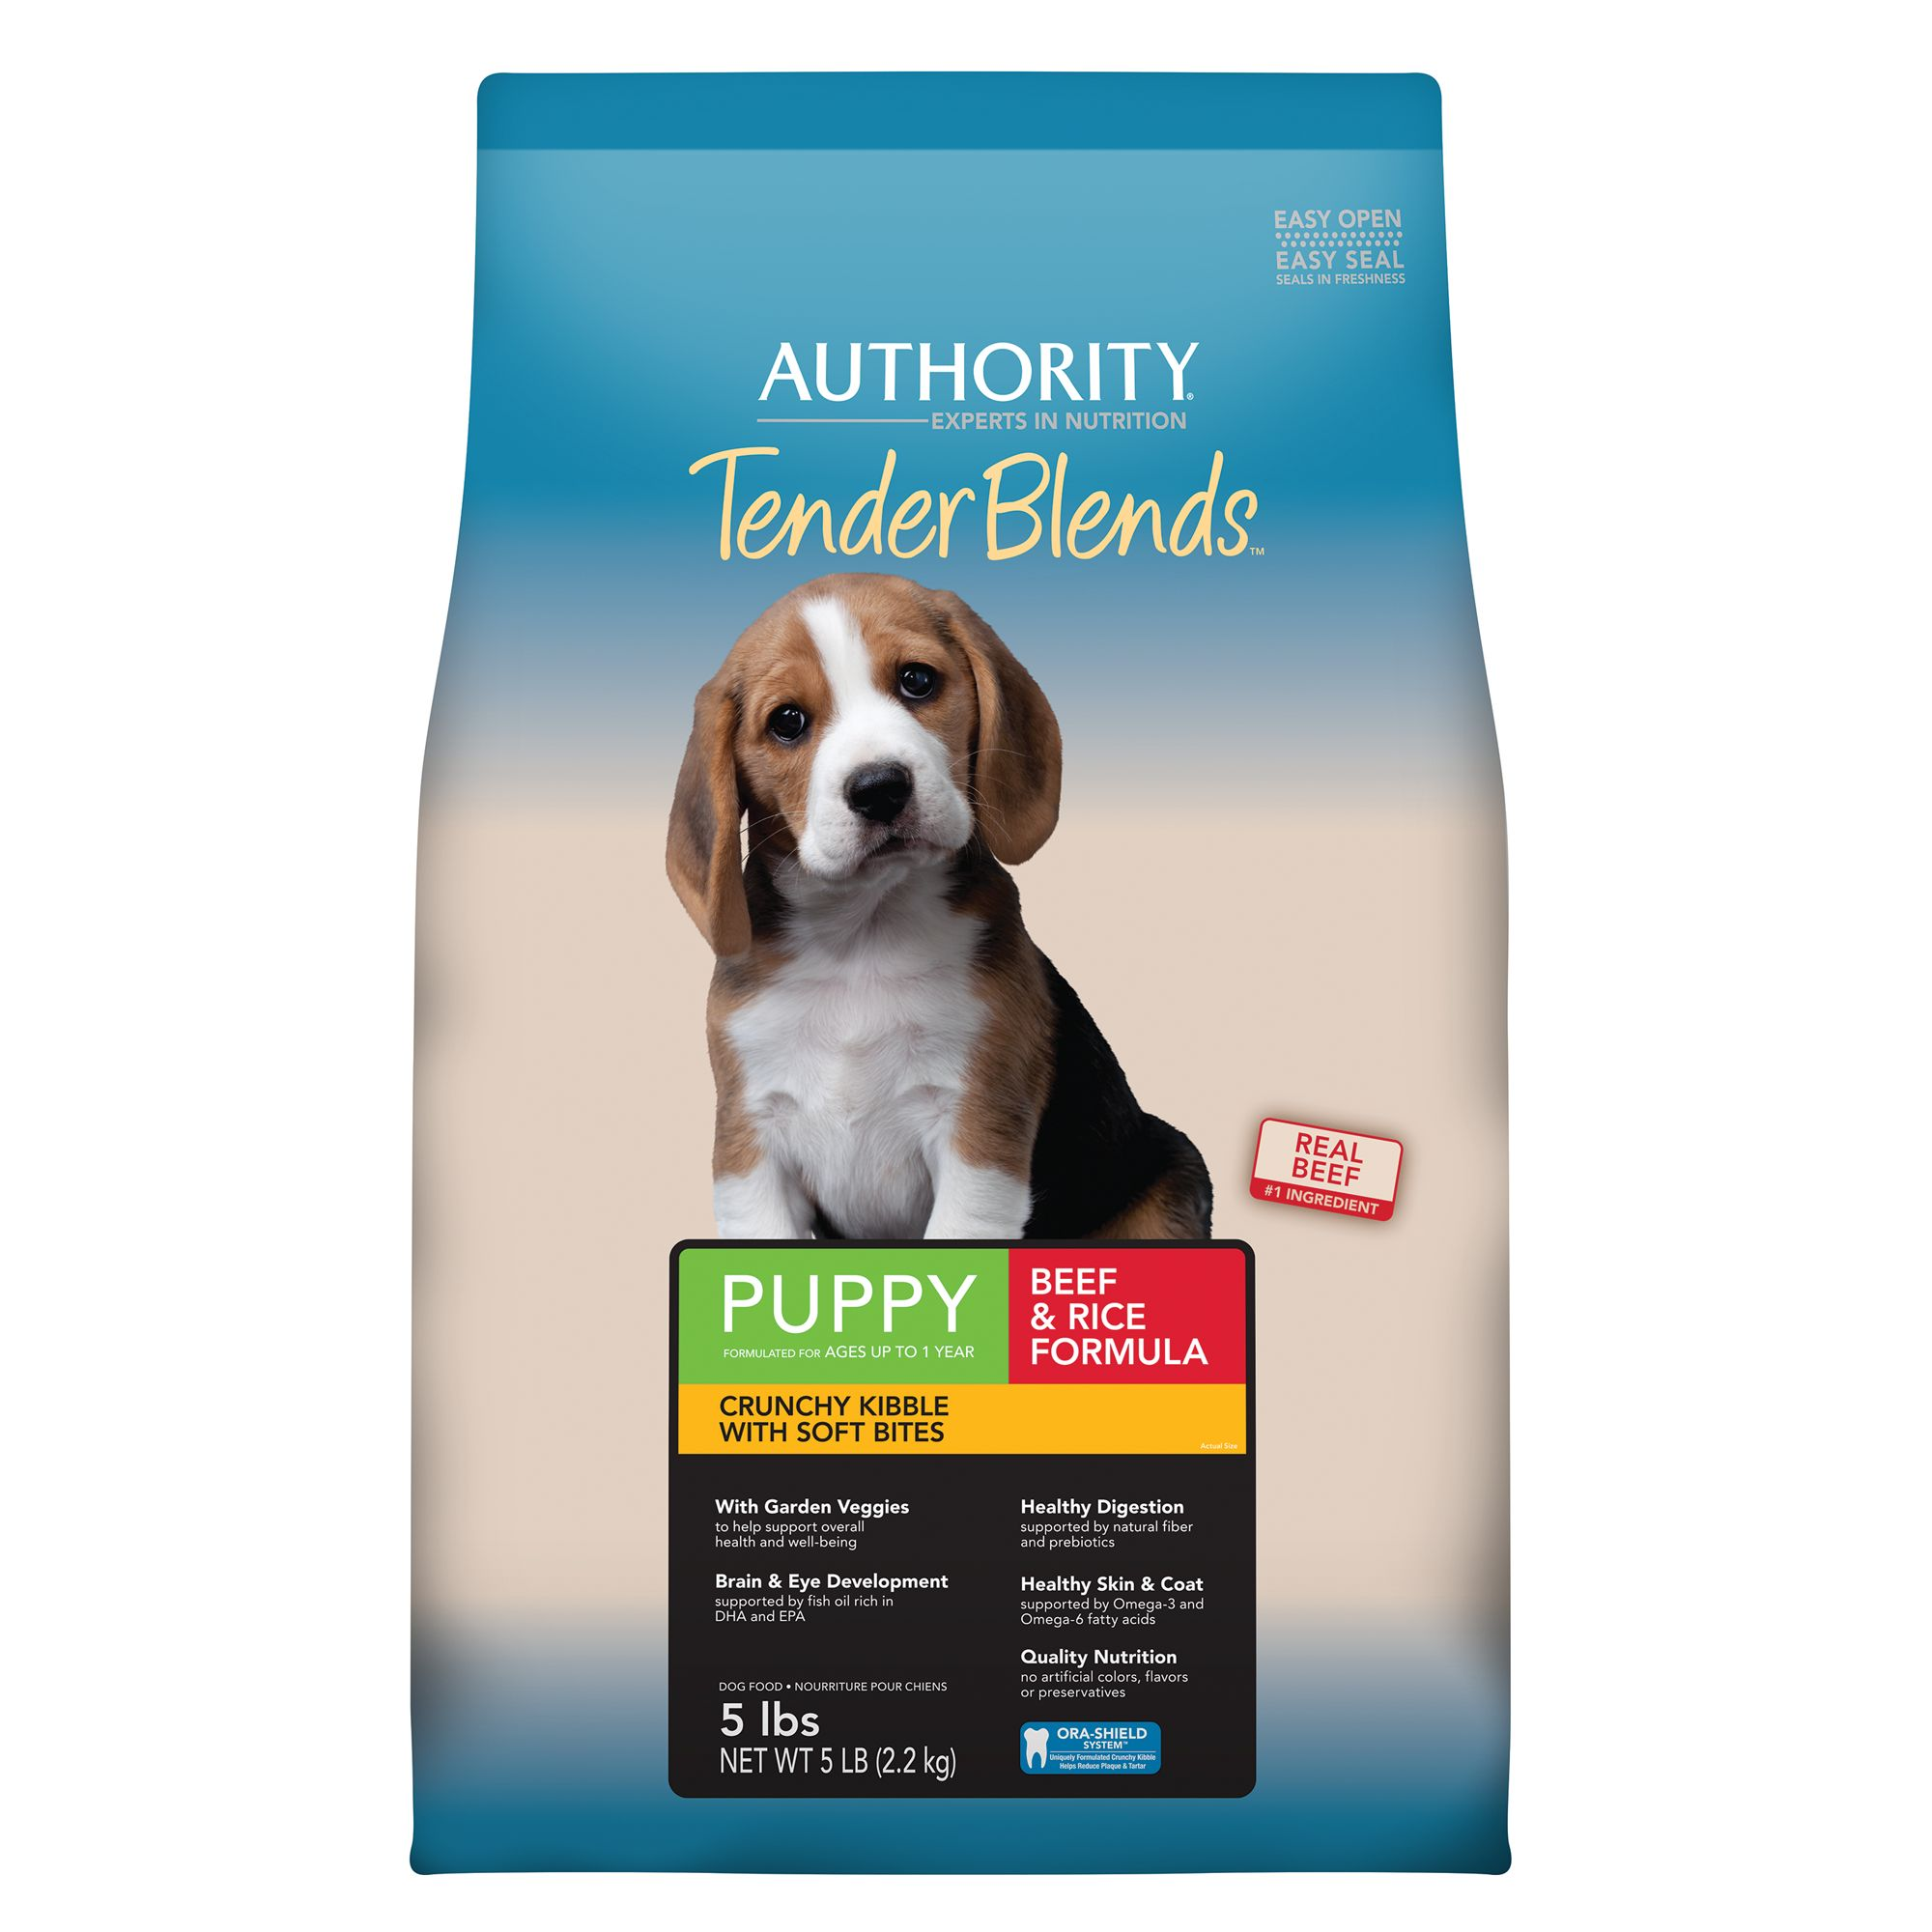 Authority Tender Blends Puppy Food - Beef and Rice size: 5 Lb, Beef & Rice, Kibble, Puppy (ages up to 1 year), Deboned Beef 5254629